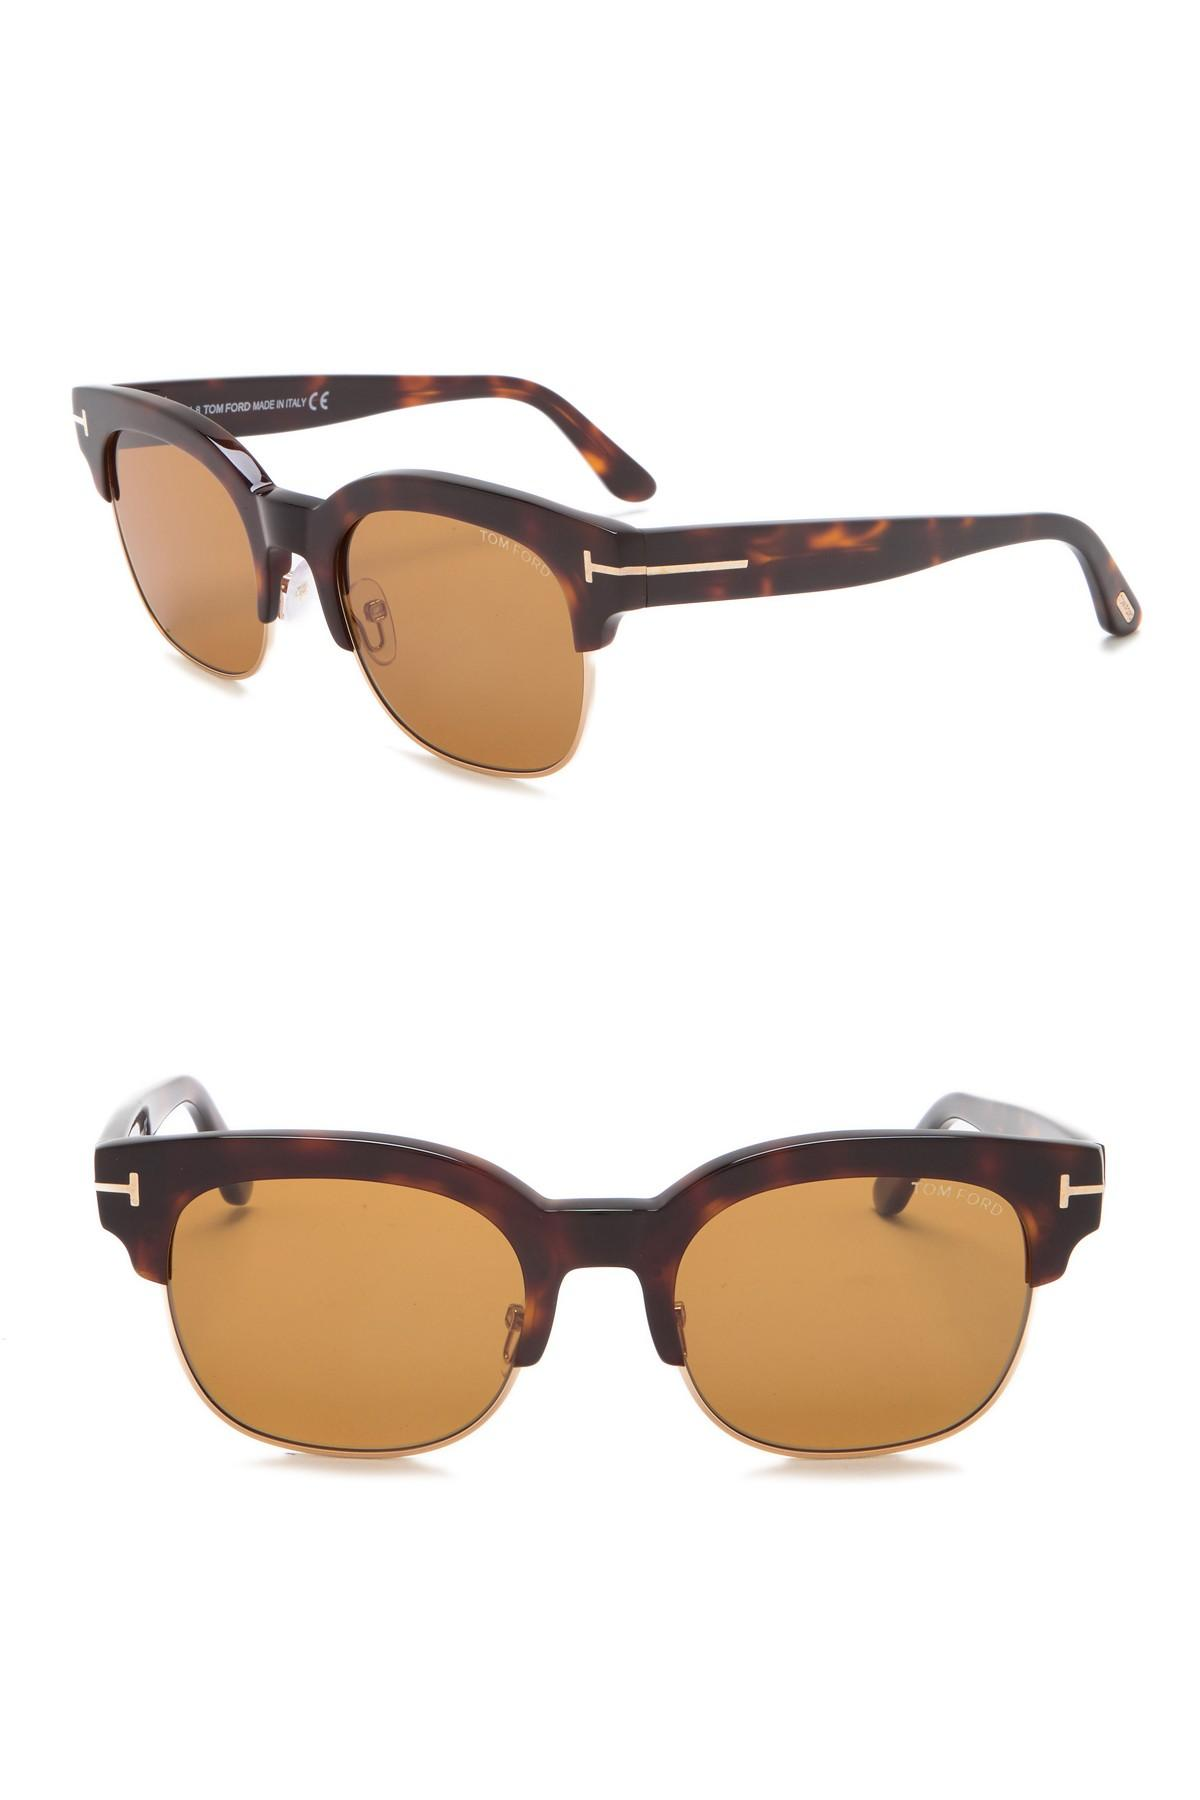 8751c932f2a Tom Ford - Brown Harry 53mm Clubmaster Sunglasses for Men - Lyst. View  fullscreen